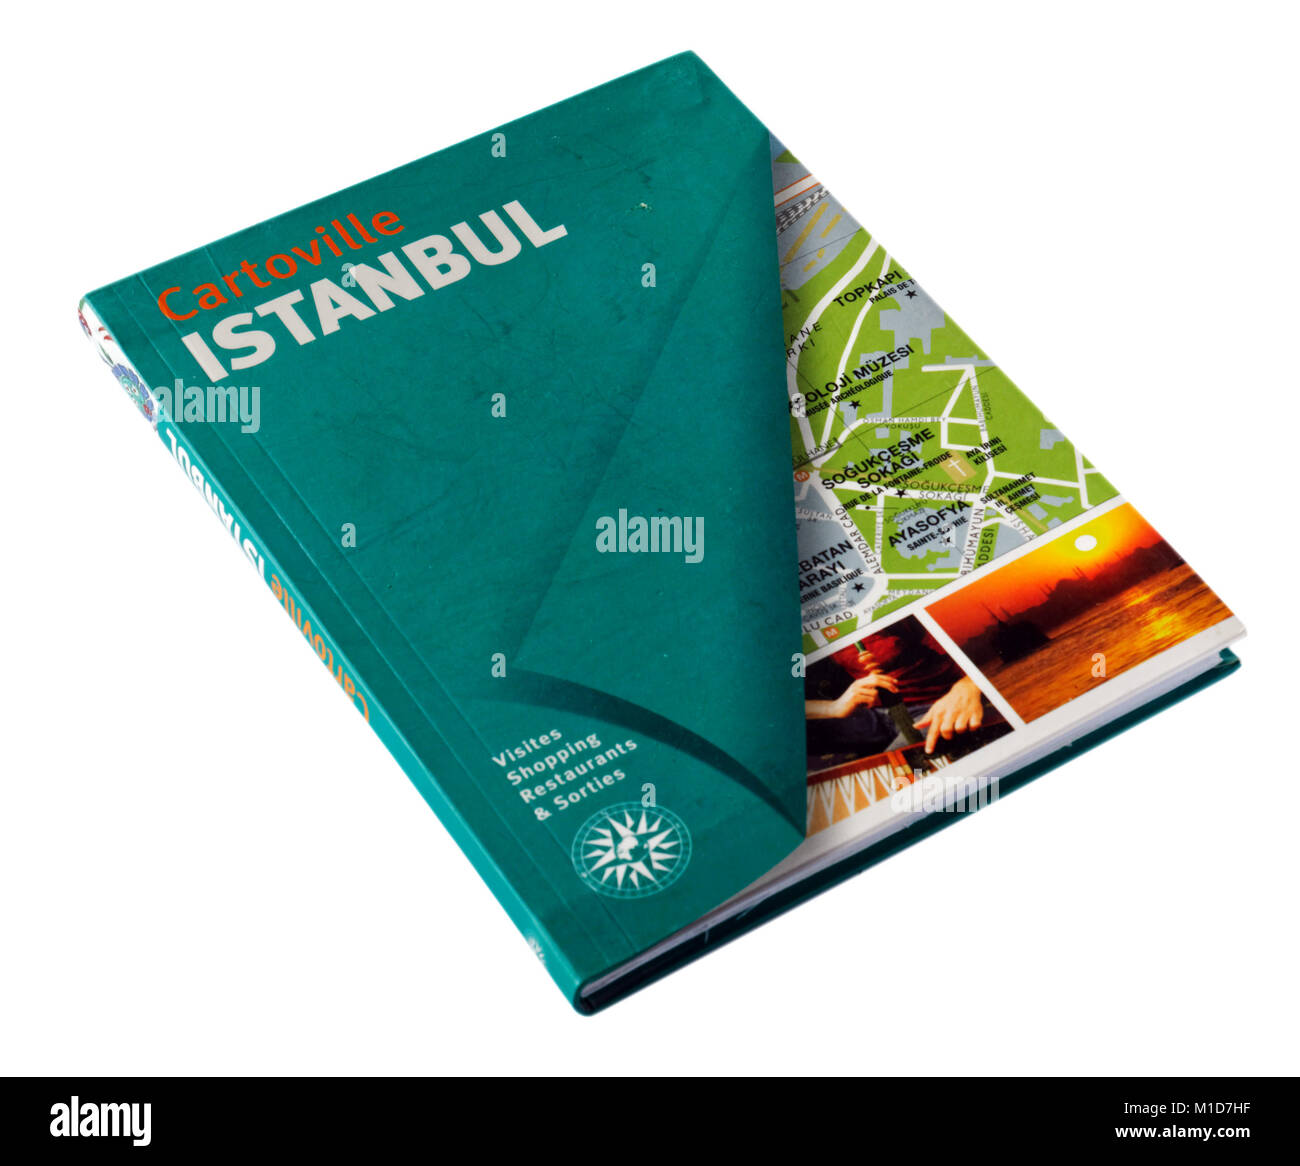 The Cartoville city guide to Istanbul - Stock Image